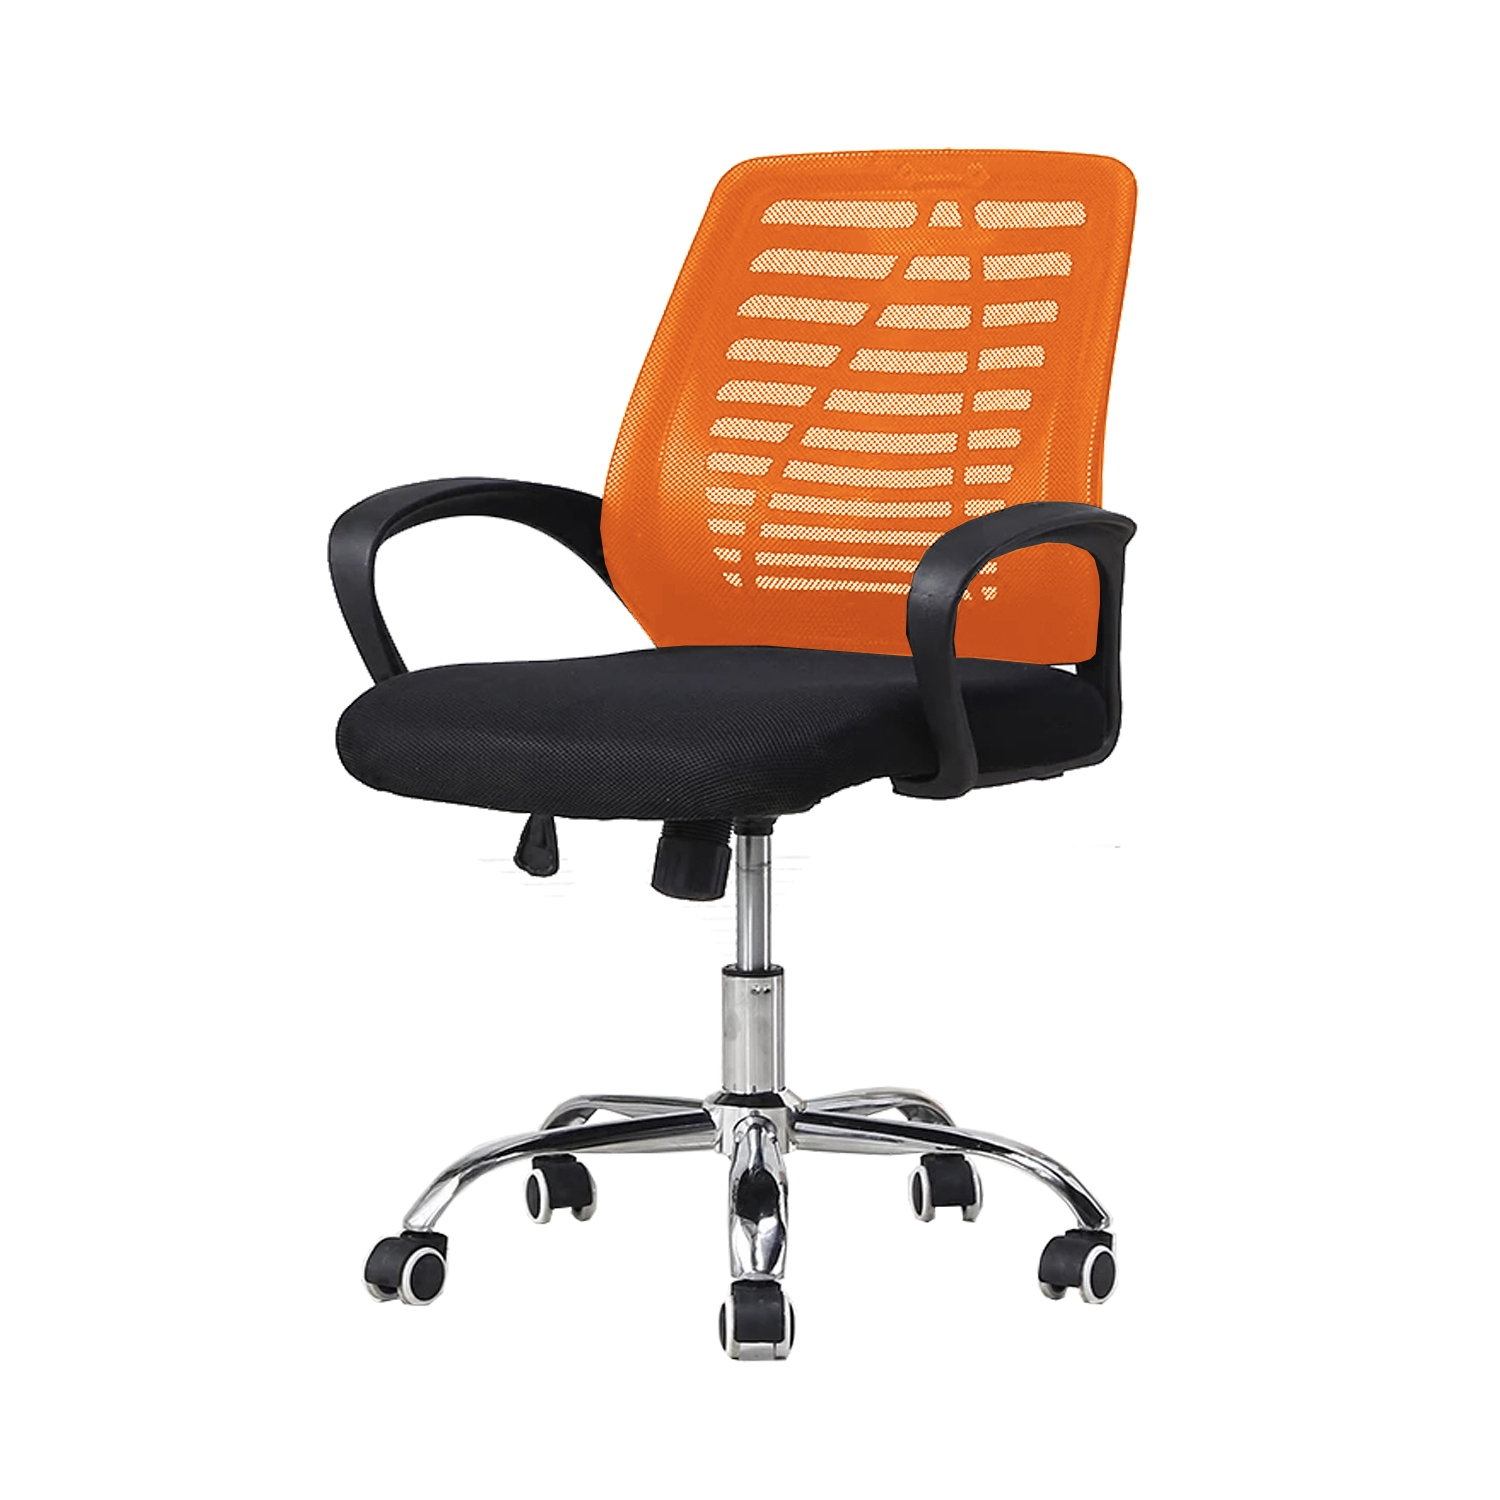 [FurnitureMartSG] Wisteria Office Chair in Orange_FREE DELIVERY + FREE INSTALLATION